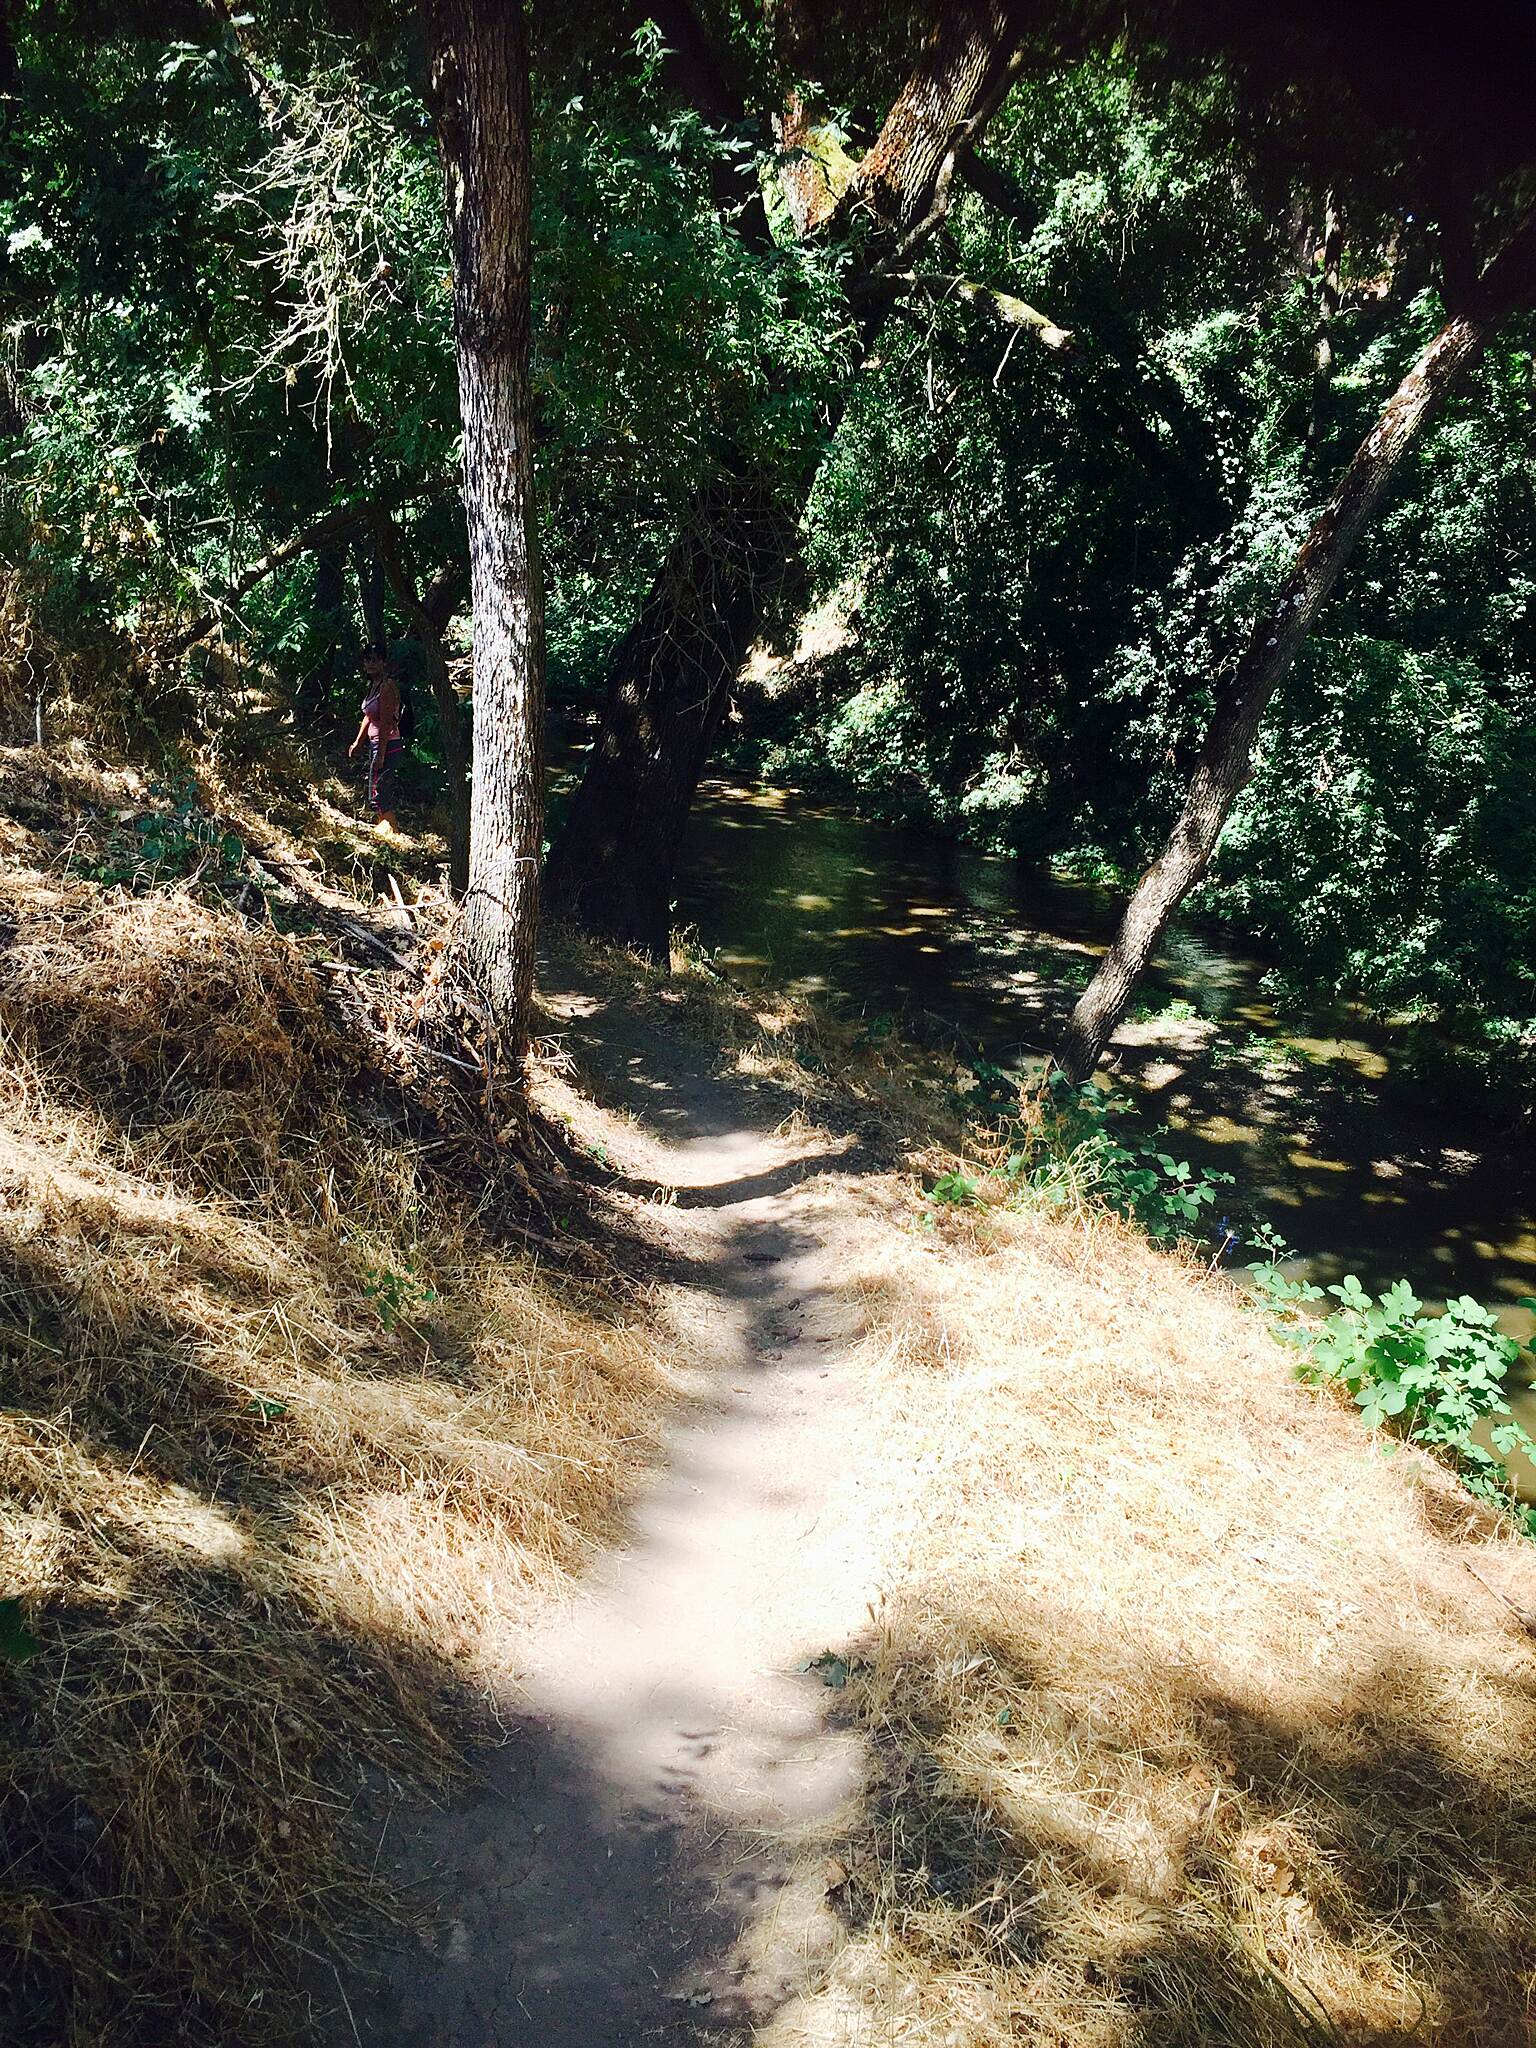 Dry Creek Trail (Modesto) Trail run  Pic I took while doing a trail run with my friend